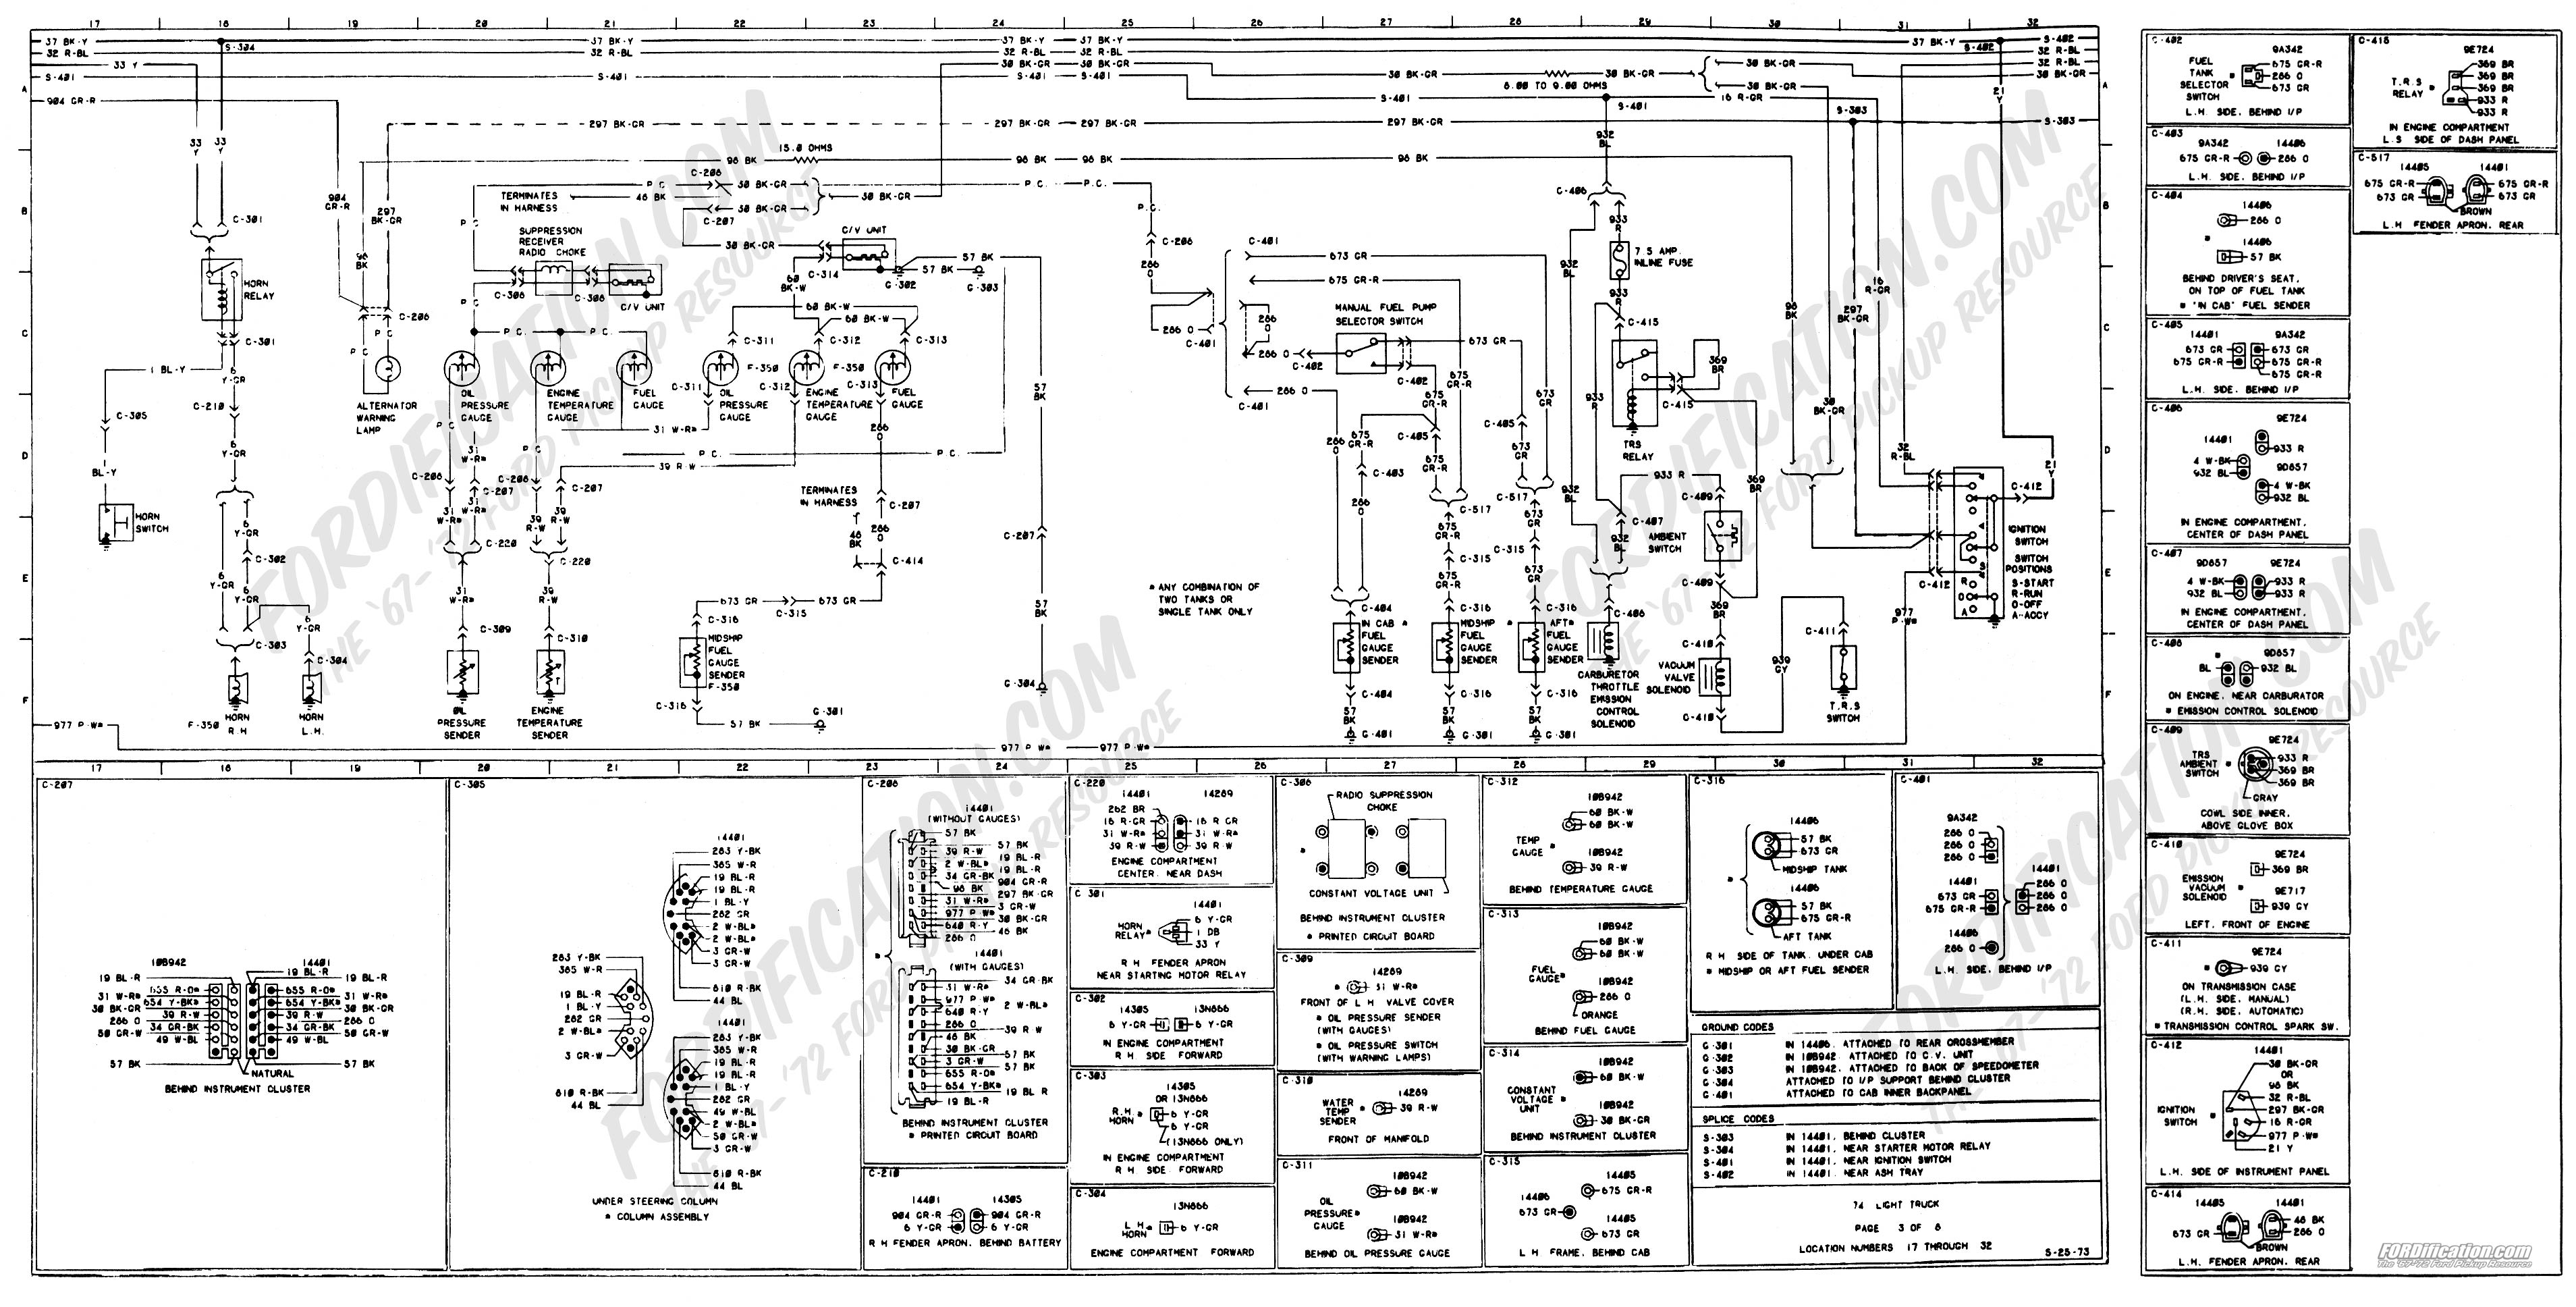 1993 1995 Auto Shut Asd Wiring Diagram Jeep 4 0l 1 together with 1056182 74 F100 Help With Wiring Diagram moreover 2002 Ford Taurus Fuse Box Location together with 2i6zz 1991 Plymouth Voyager 3 3 Liter Engine Normally Fuel Pump besides Toyota Tundra Starter Location Diagram. on 2007 f150 fuel pump relay location